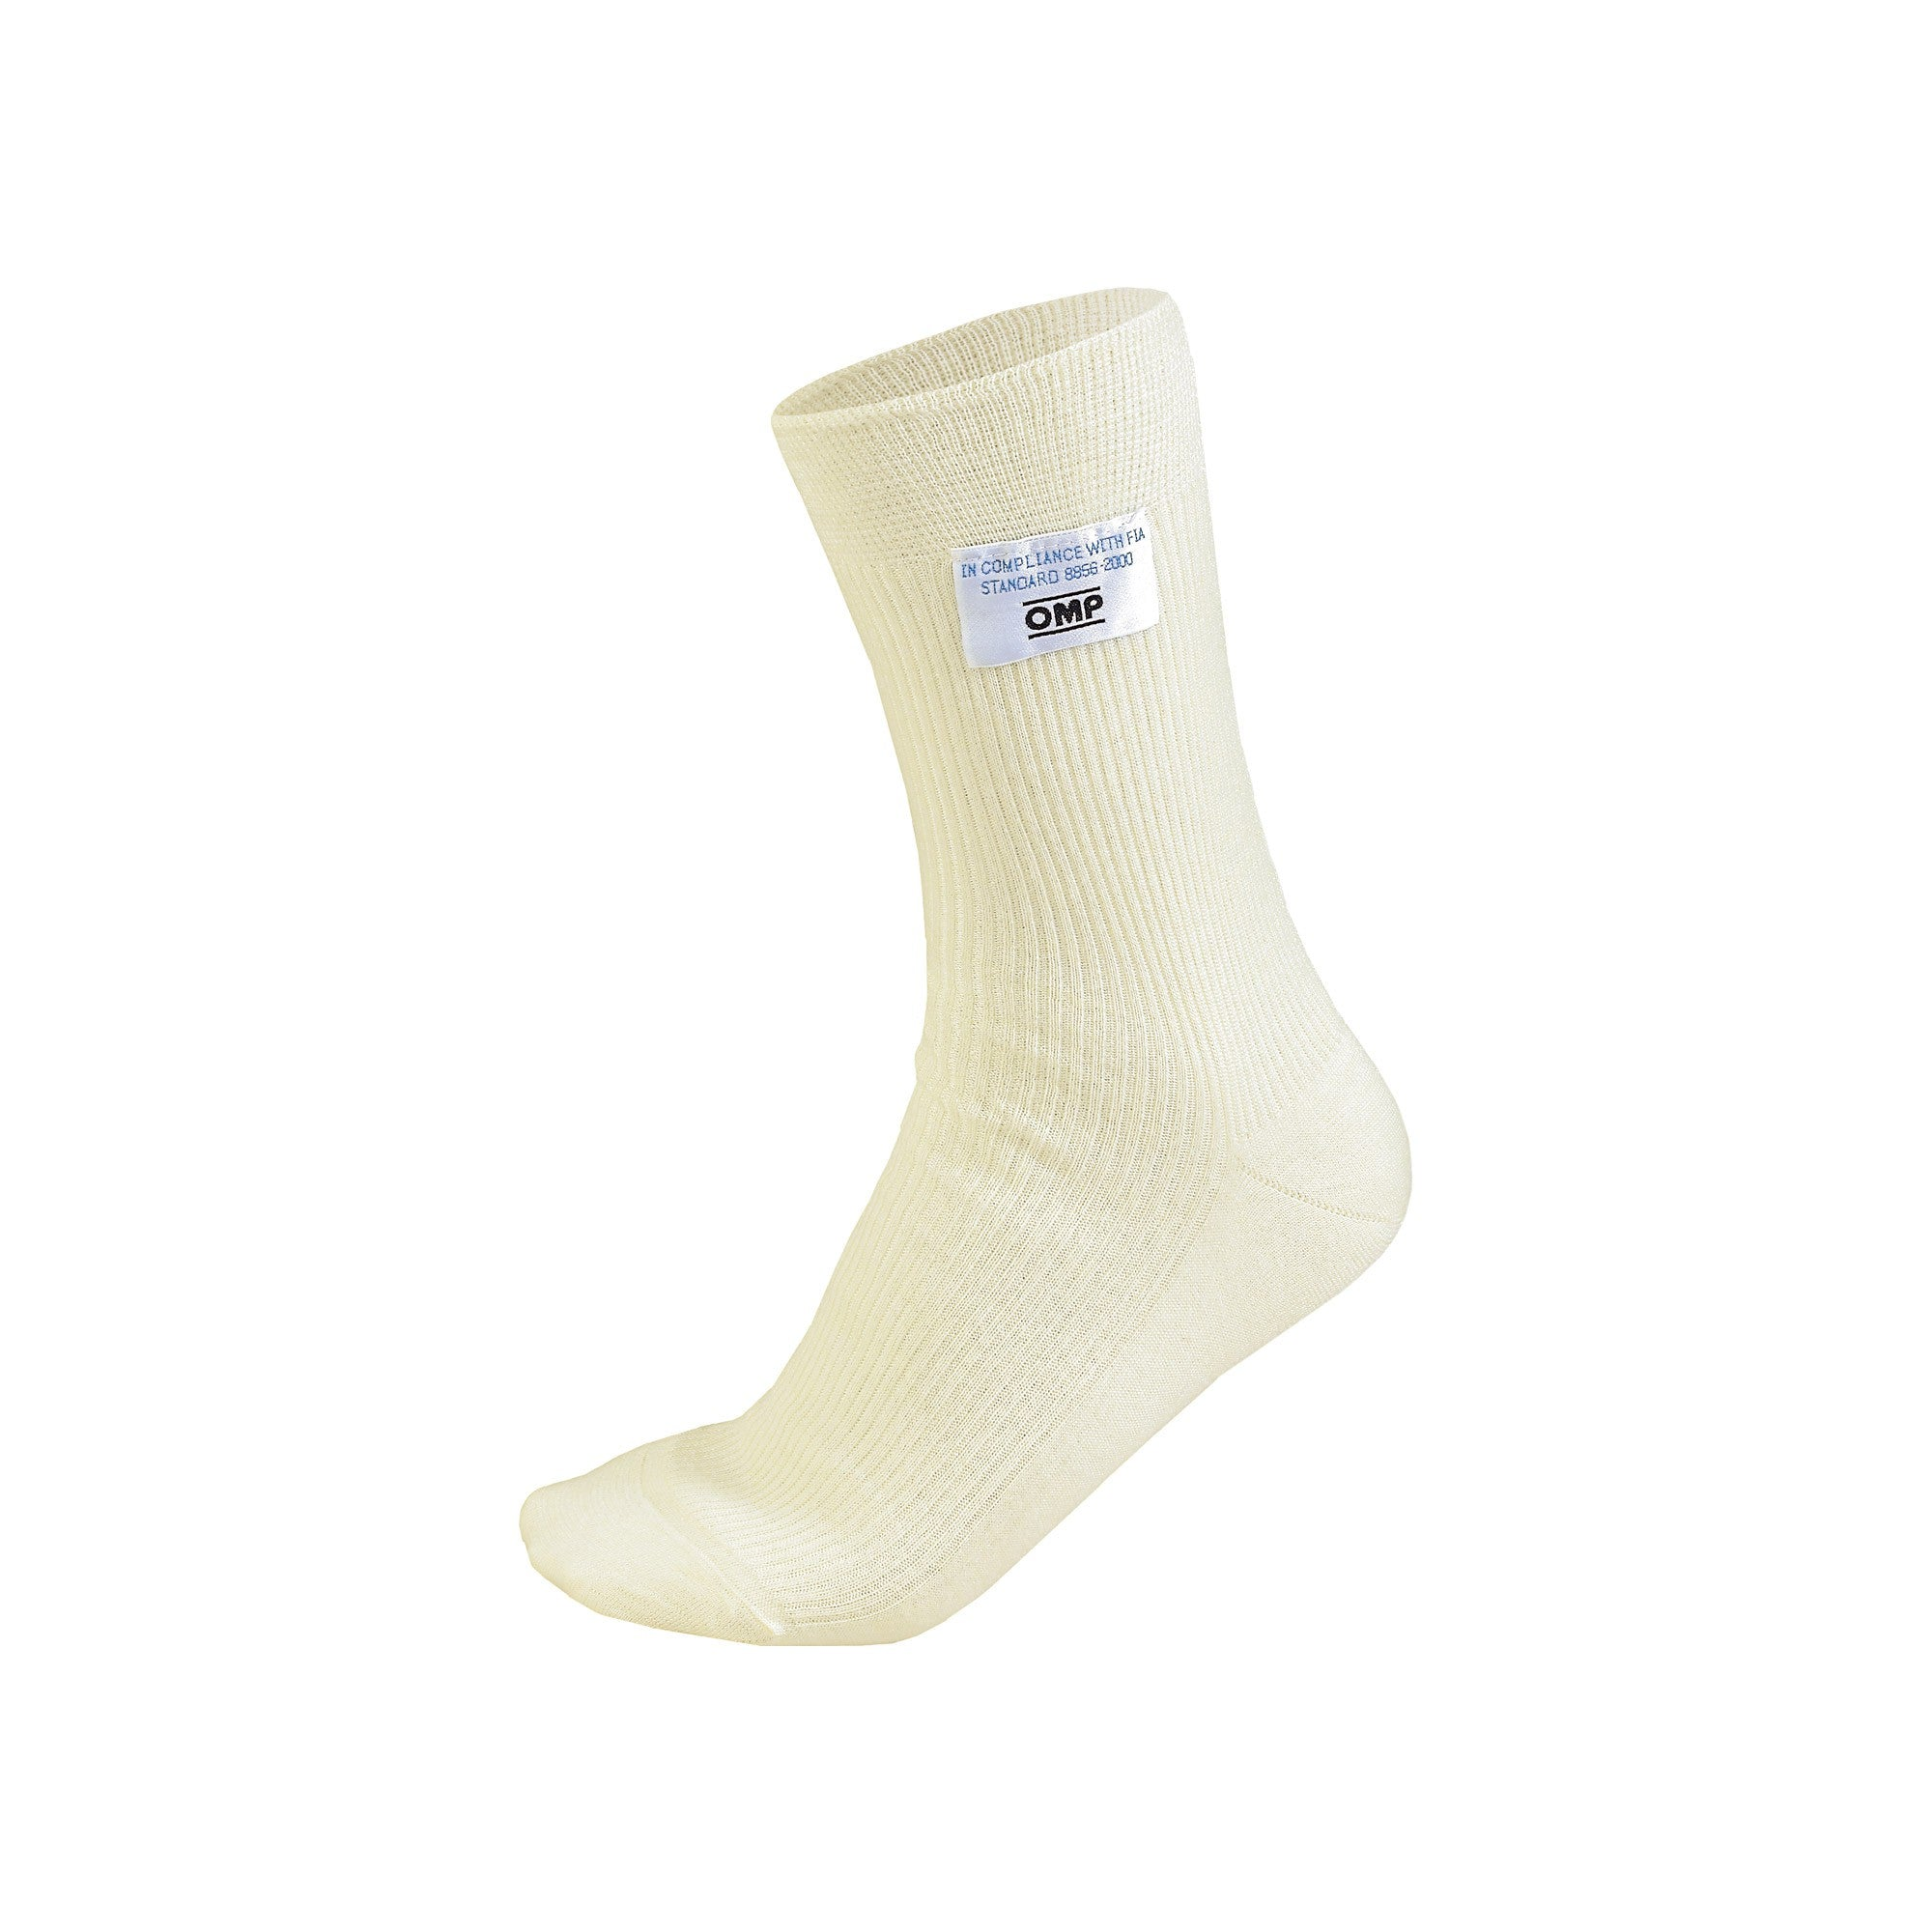 OMP First Socks - Saferacer